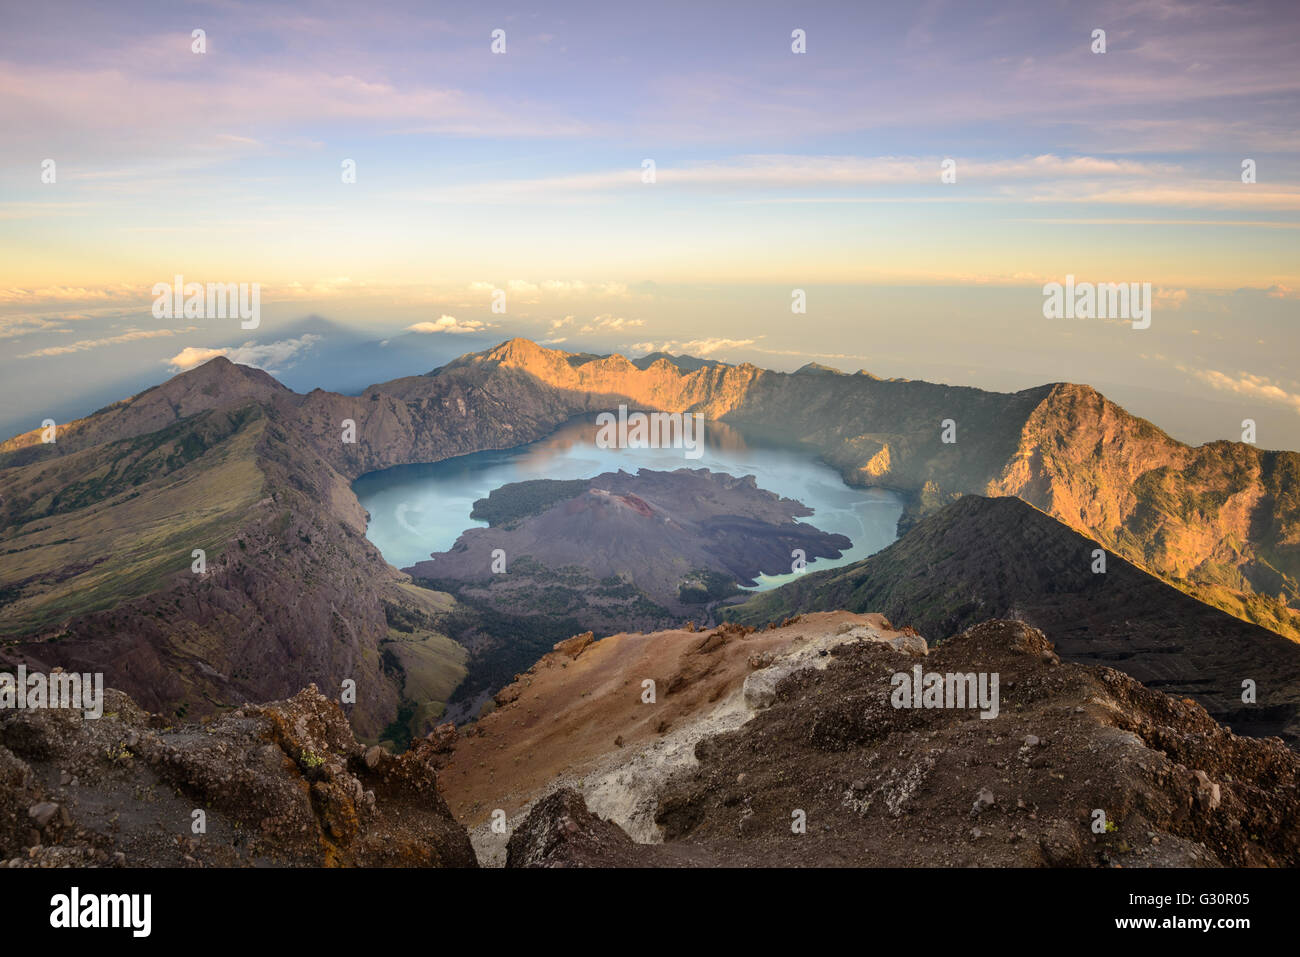 The Mt. Rinjani crater and a shadow cast from the peak at sunrise - Stock Image